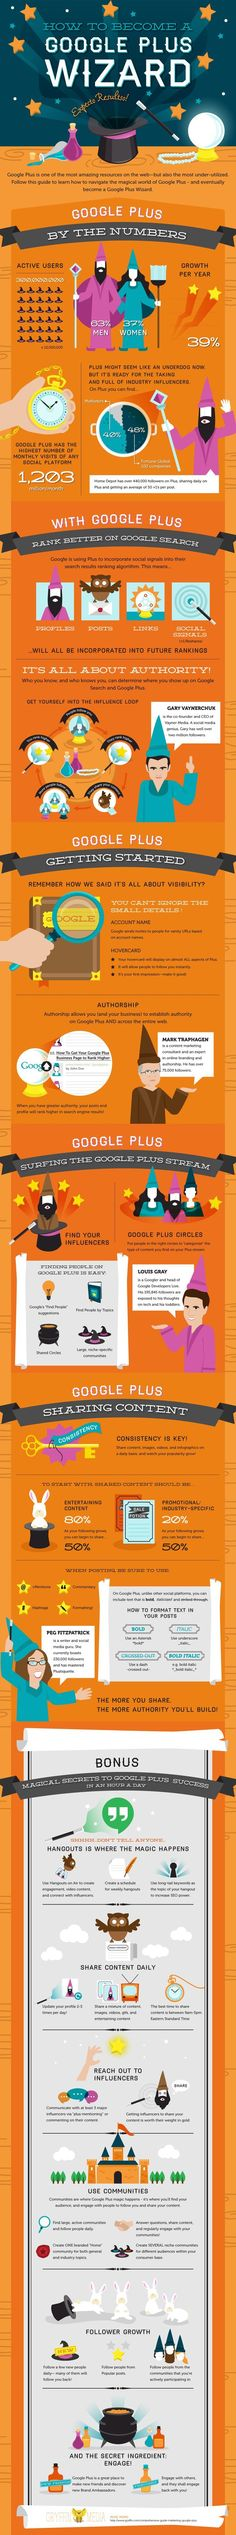 In this infographic you'll learn: How Google Plus impacts Search, Why you need to be on Google+, How to use Circles and surf the Google Plus...